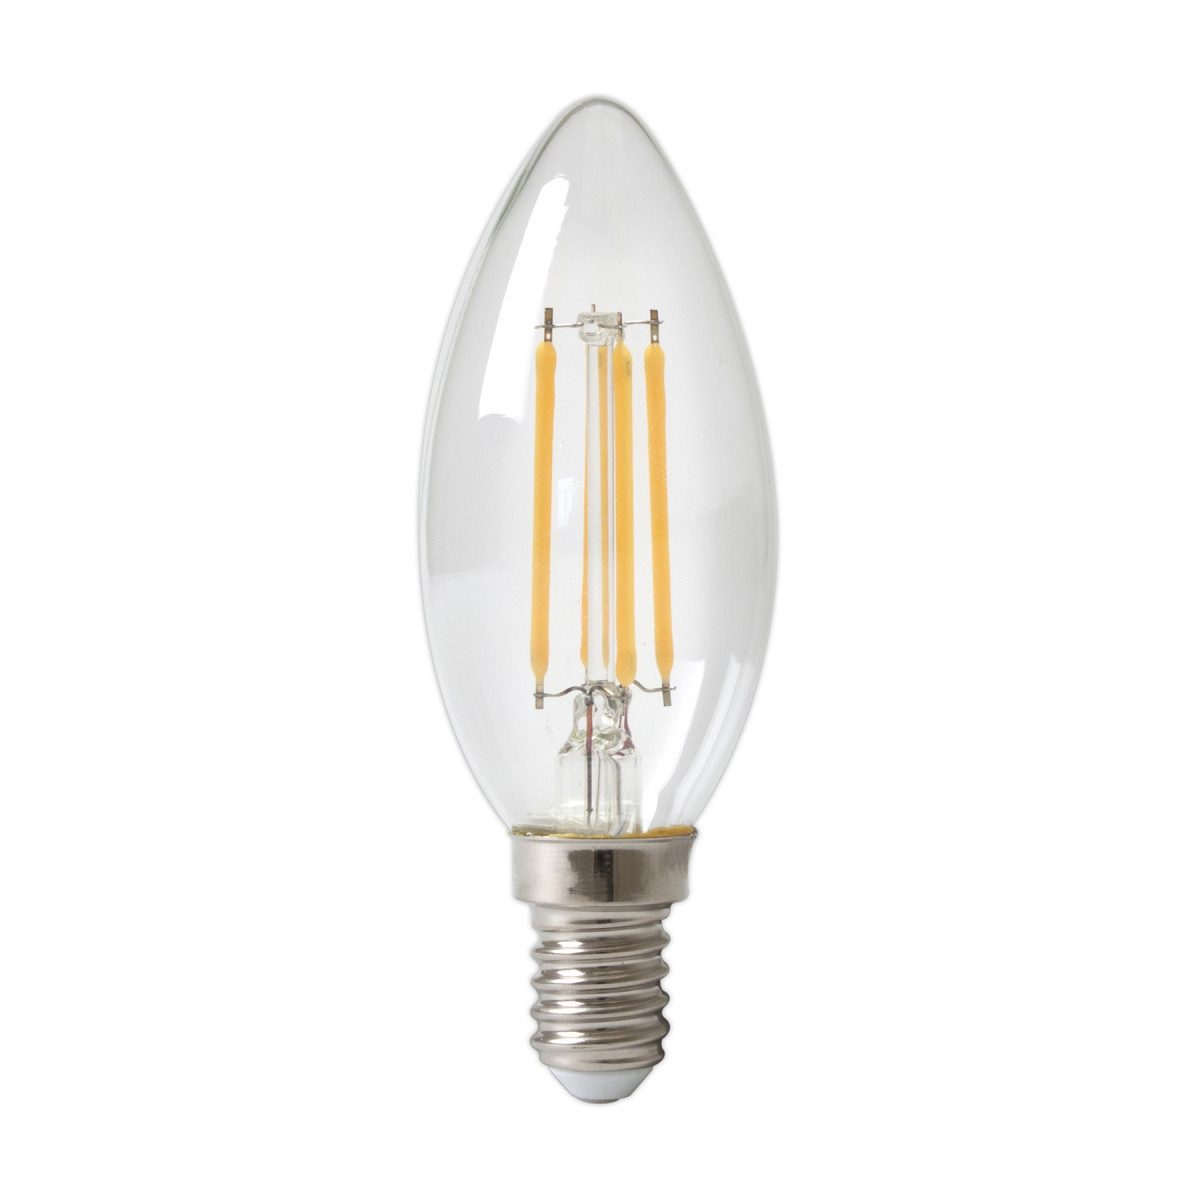 LED Candle E14 lamp